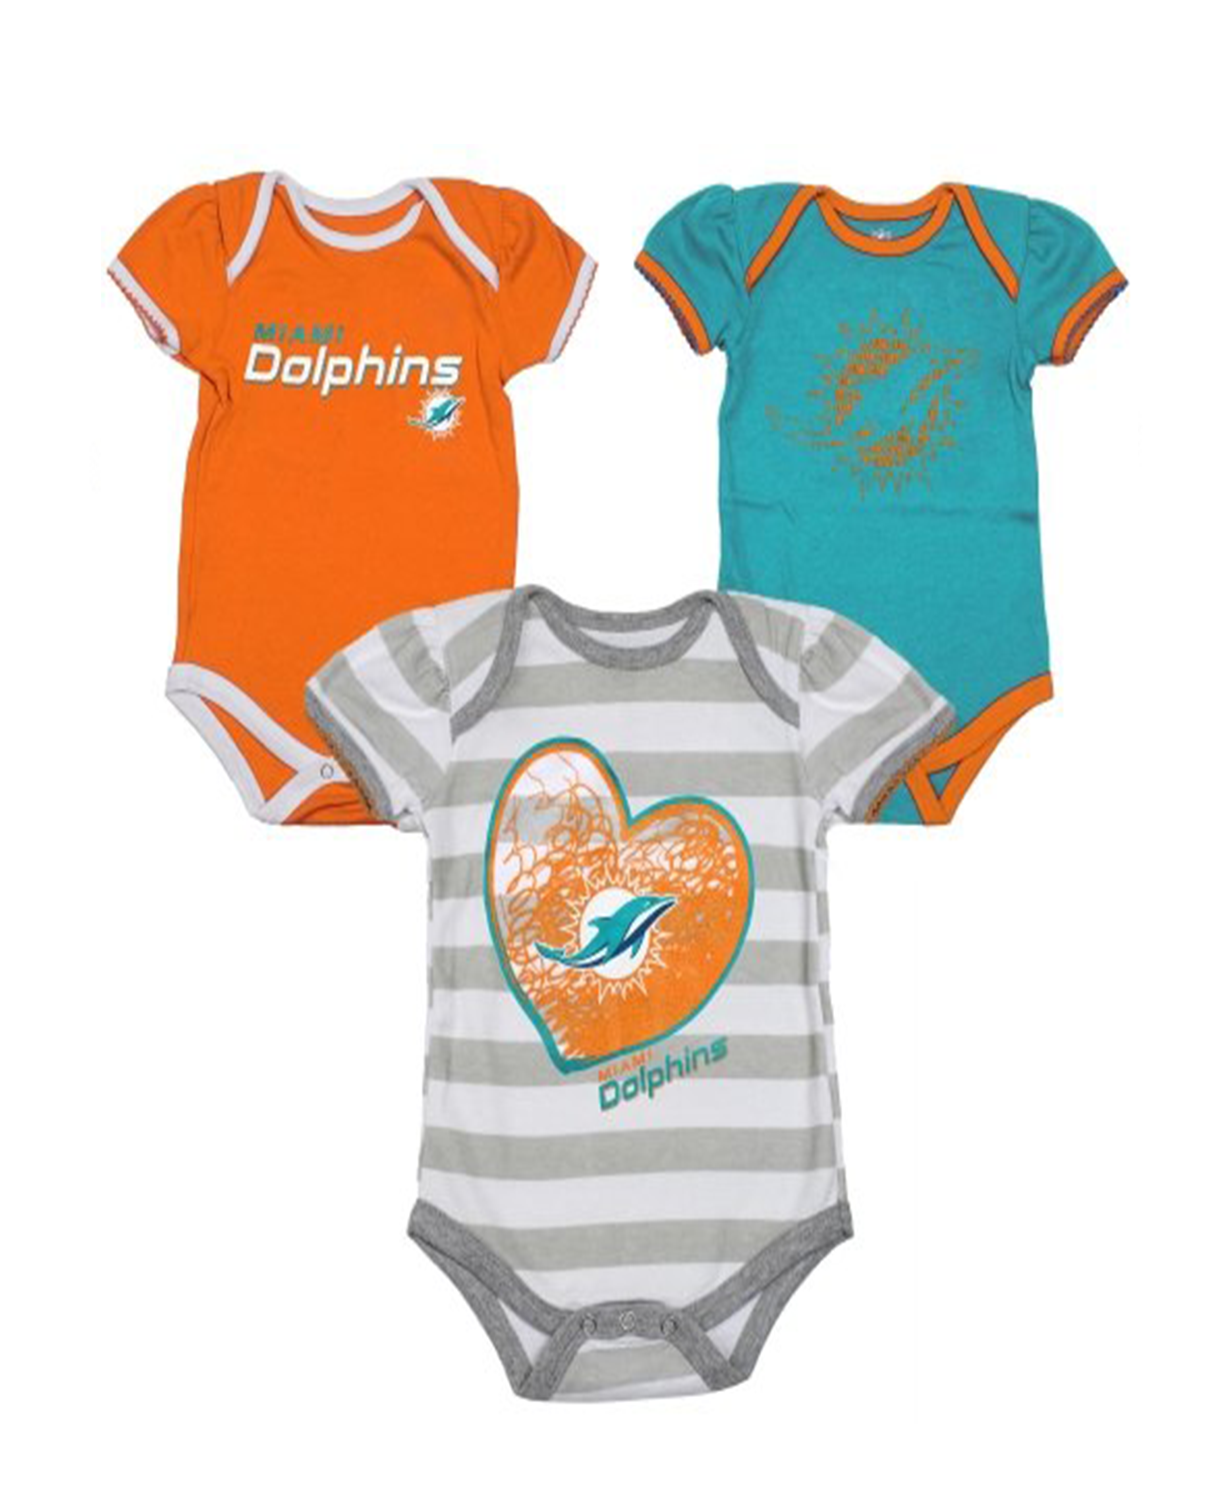 NFL Baby Dolphins 3 Pcs Bodysuit Set  Miami Dolphins Baby Clothes  - Baby  Clothes 570859fee